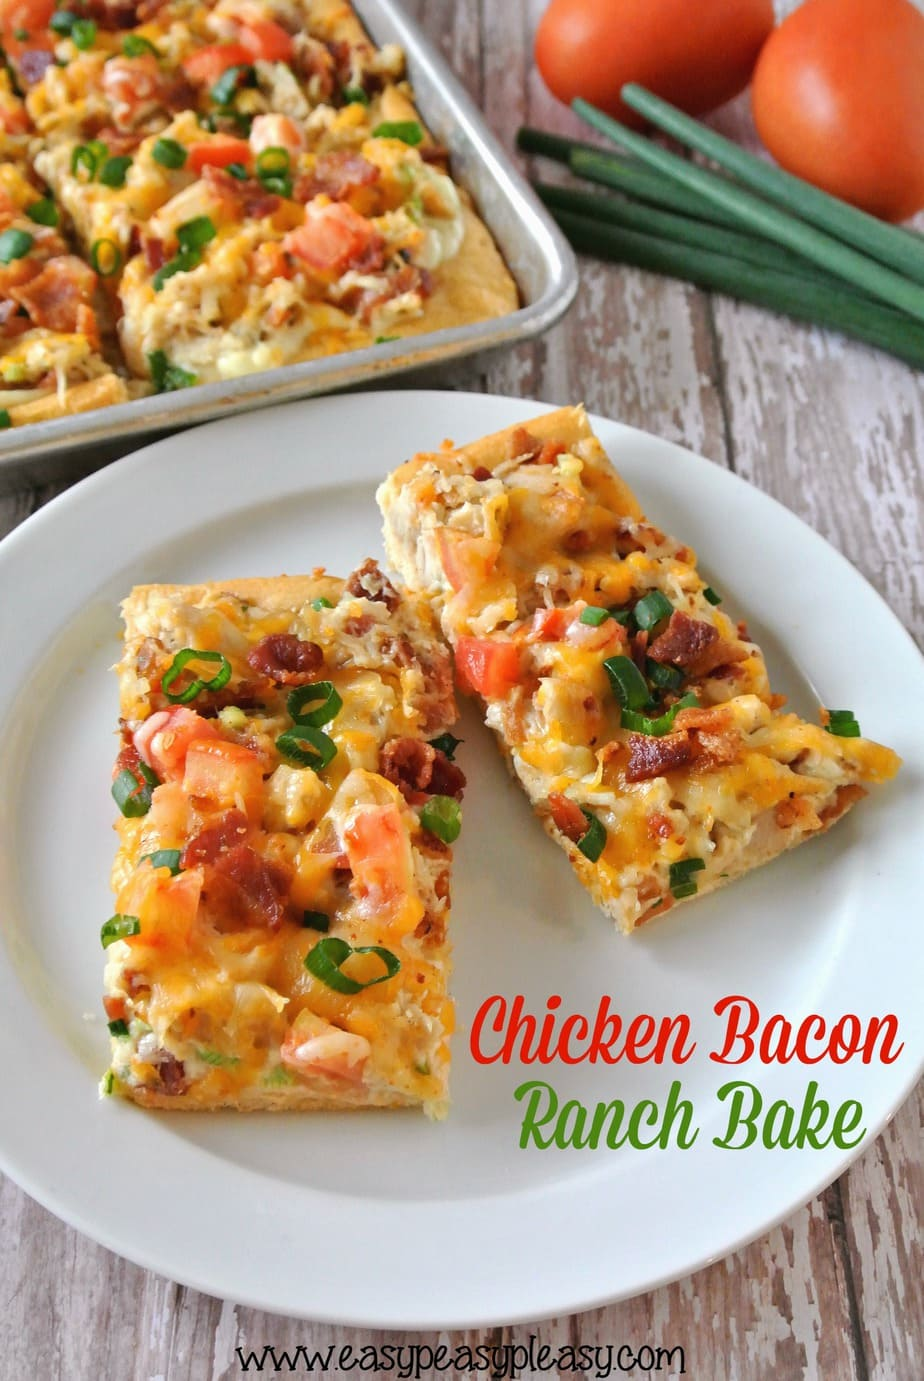 Chicken Bacon Ranch Bake is made easy with the help of a rotisserie chicken and a can of crescent rolls. Perfect for an easy weeknight dinner and great as a party appetizer!